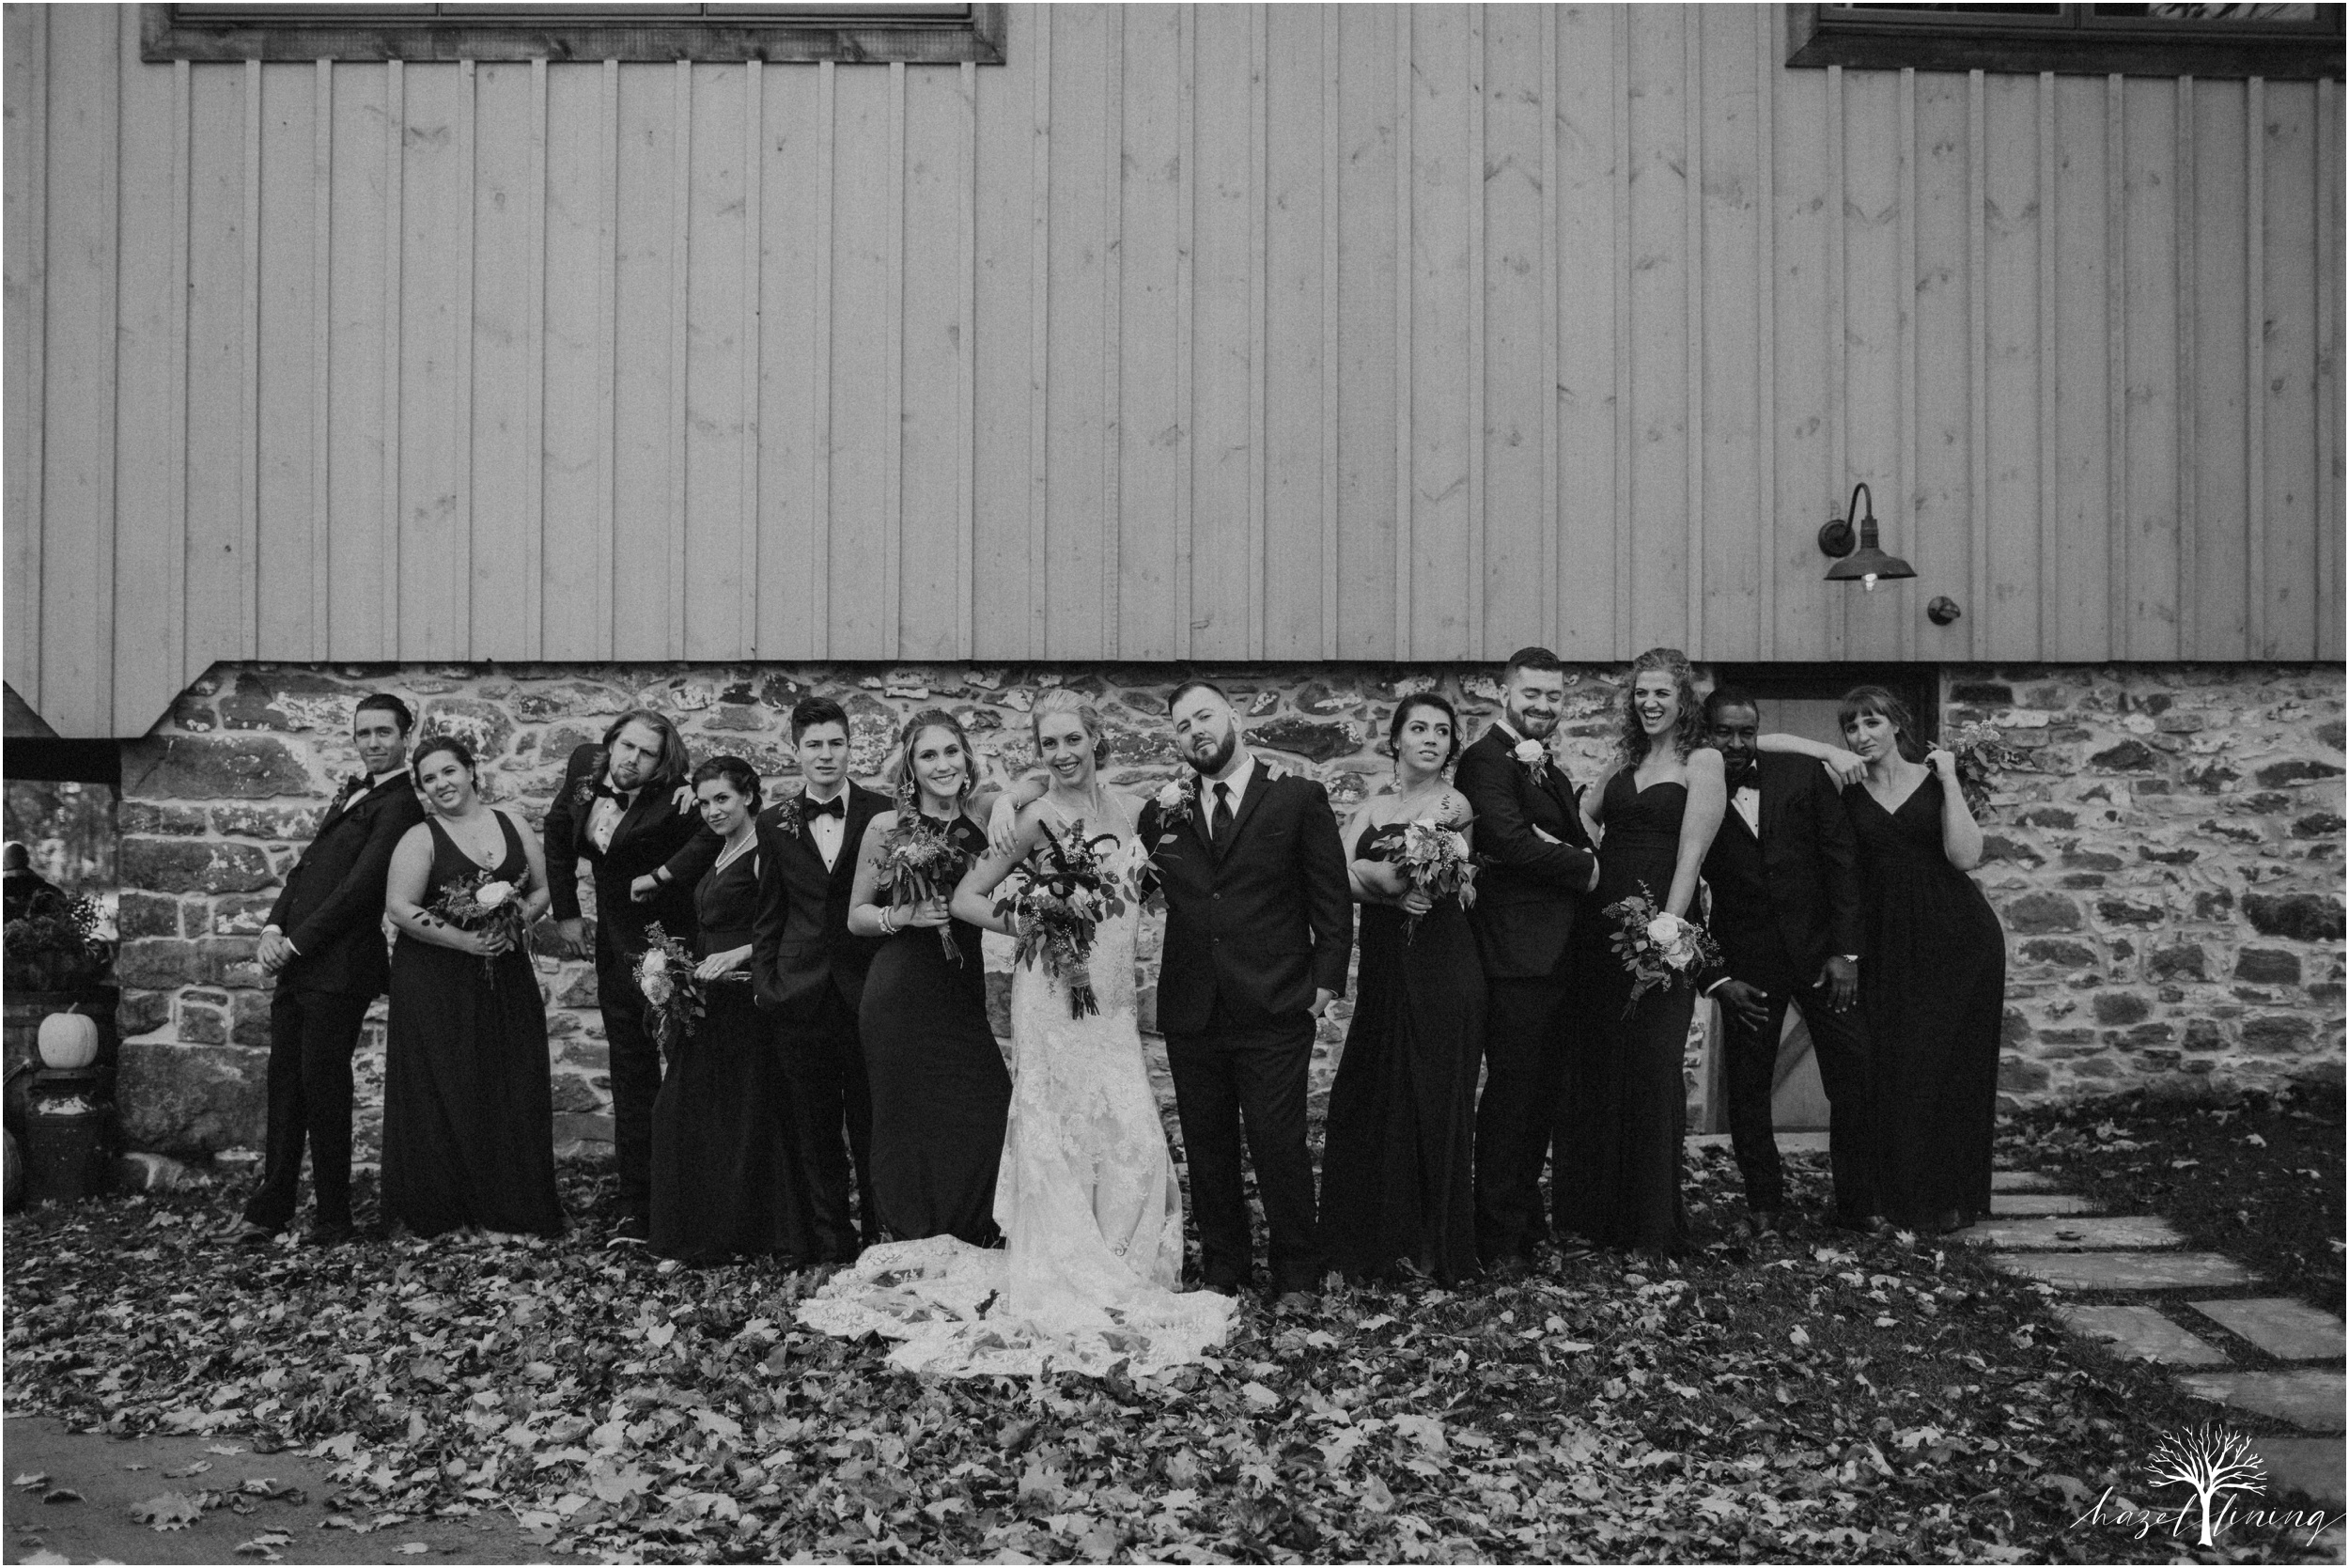 briana-krans-greg-johnston-farm-bakery-and-events-fall-wedding_0069.jpg